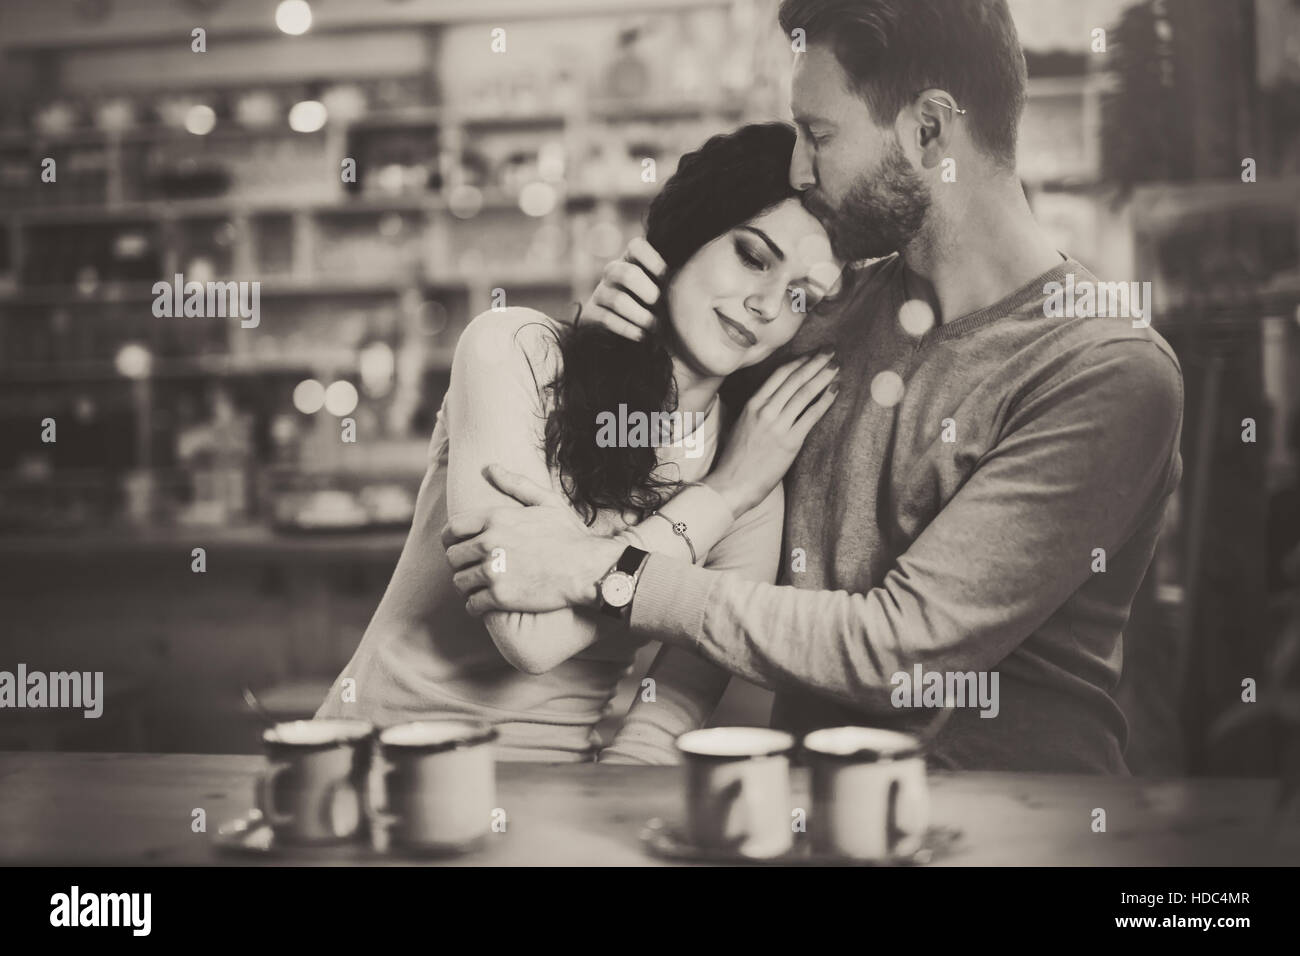 Handsome male kissing woman on forehead in cafe - Stock Image